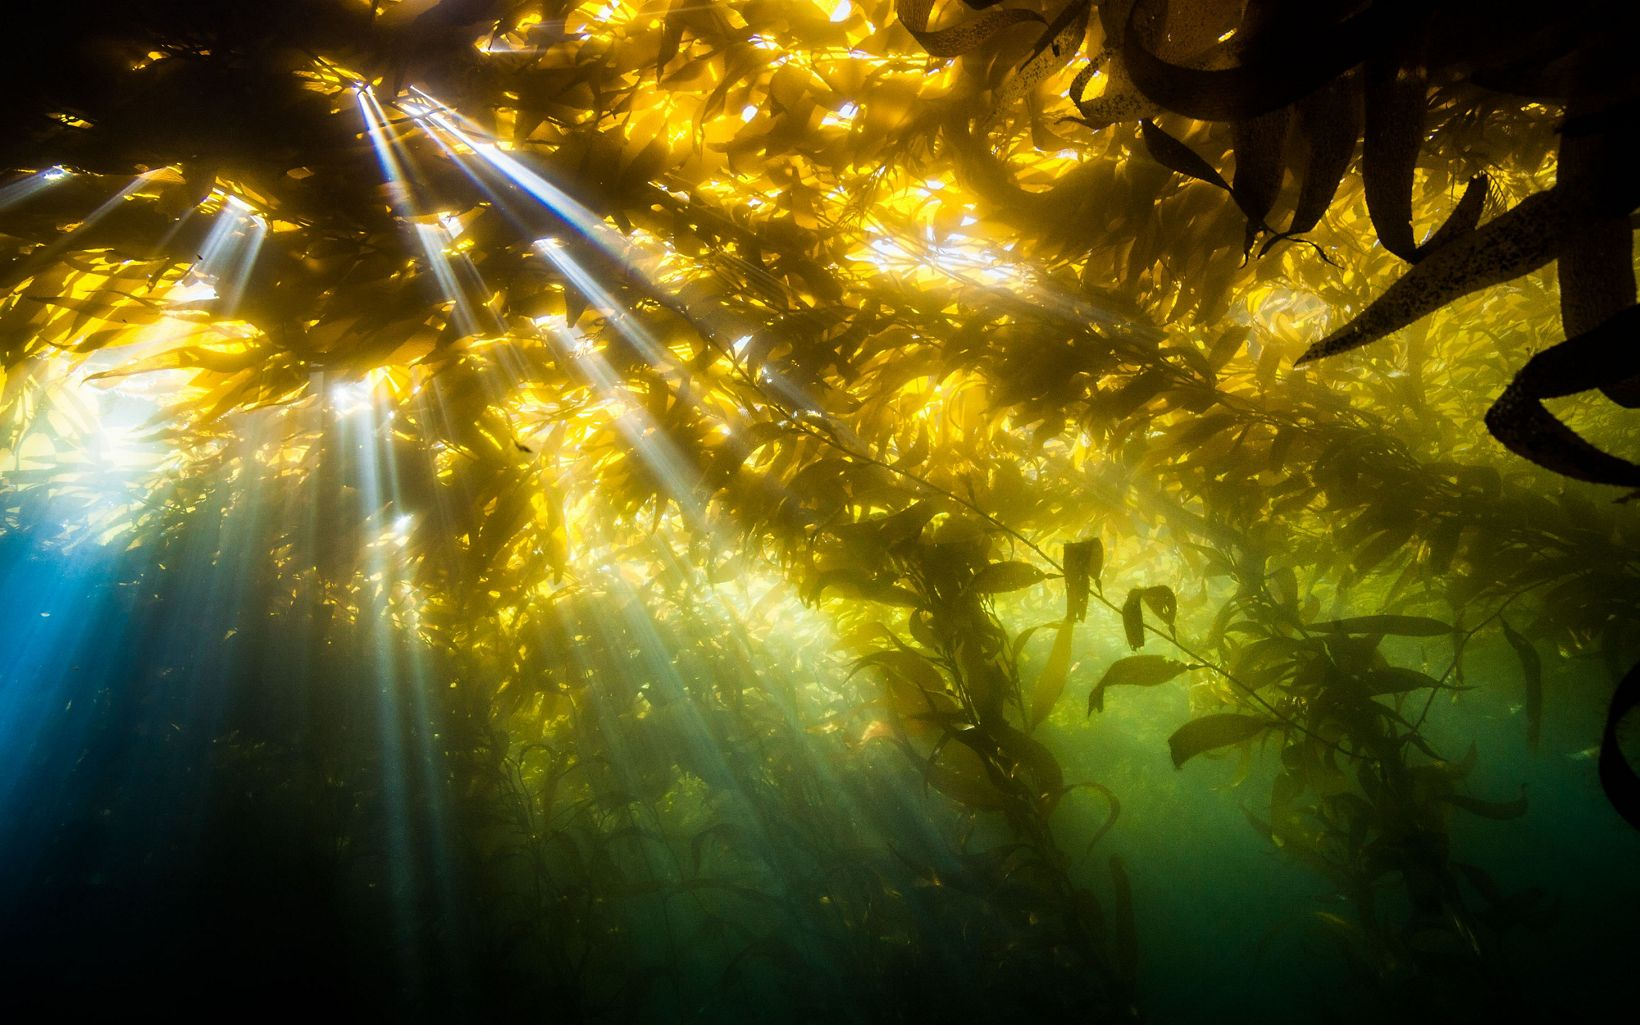 Underwater photo looking up as sun streams through kelp plants from the surface.